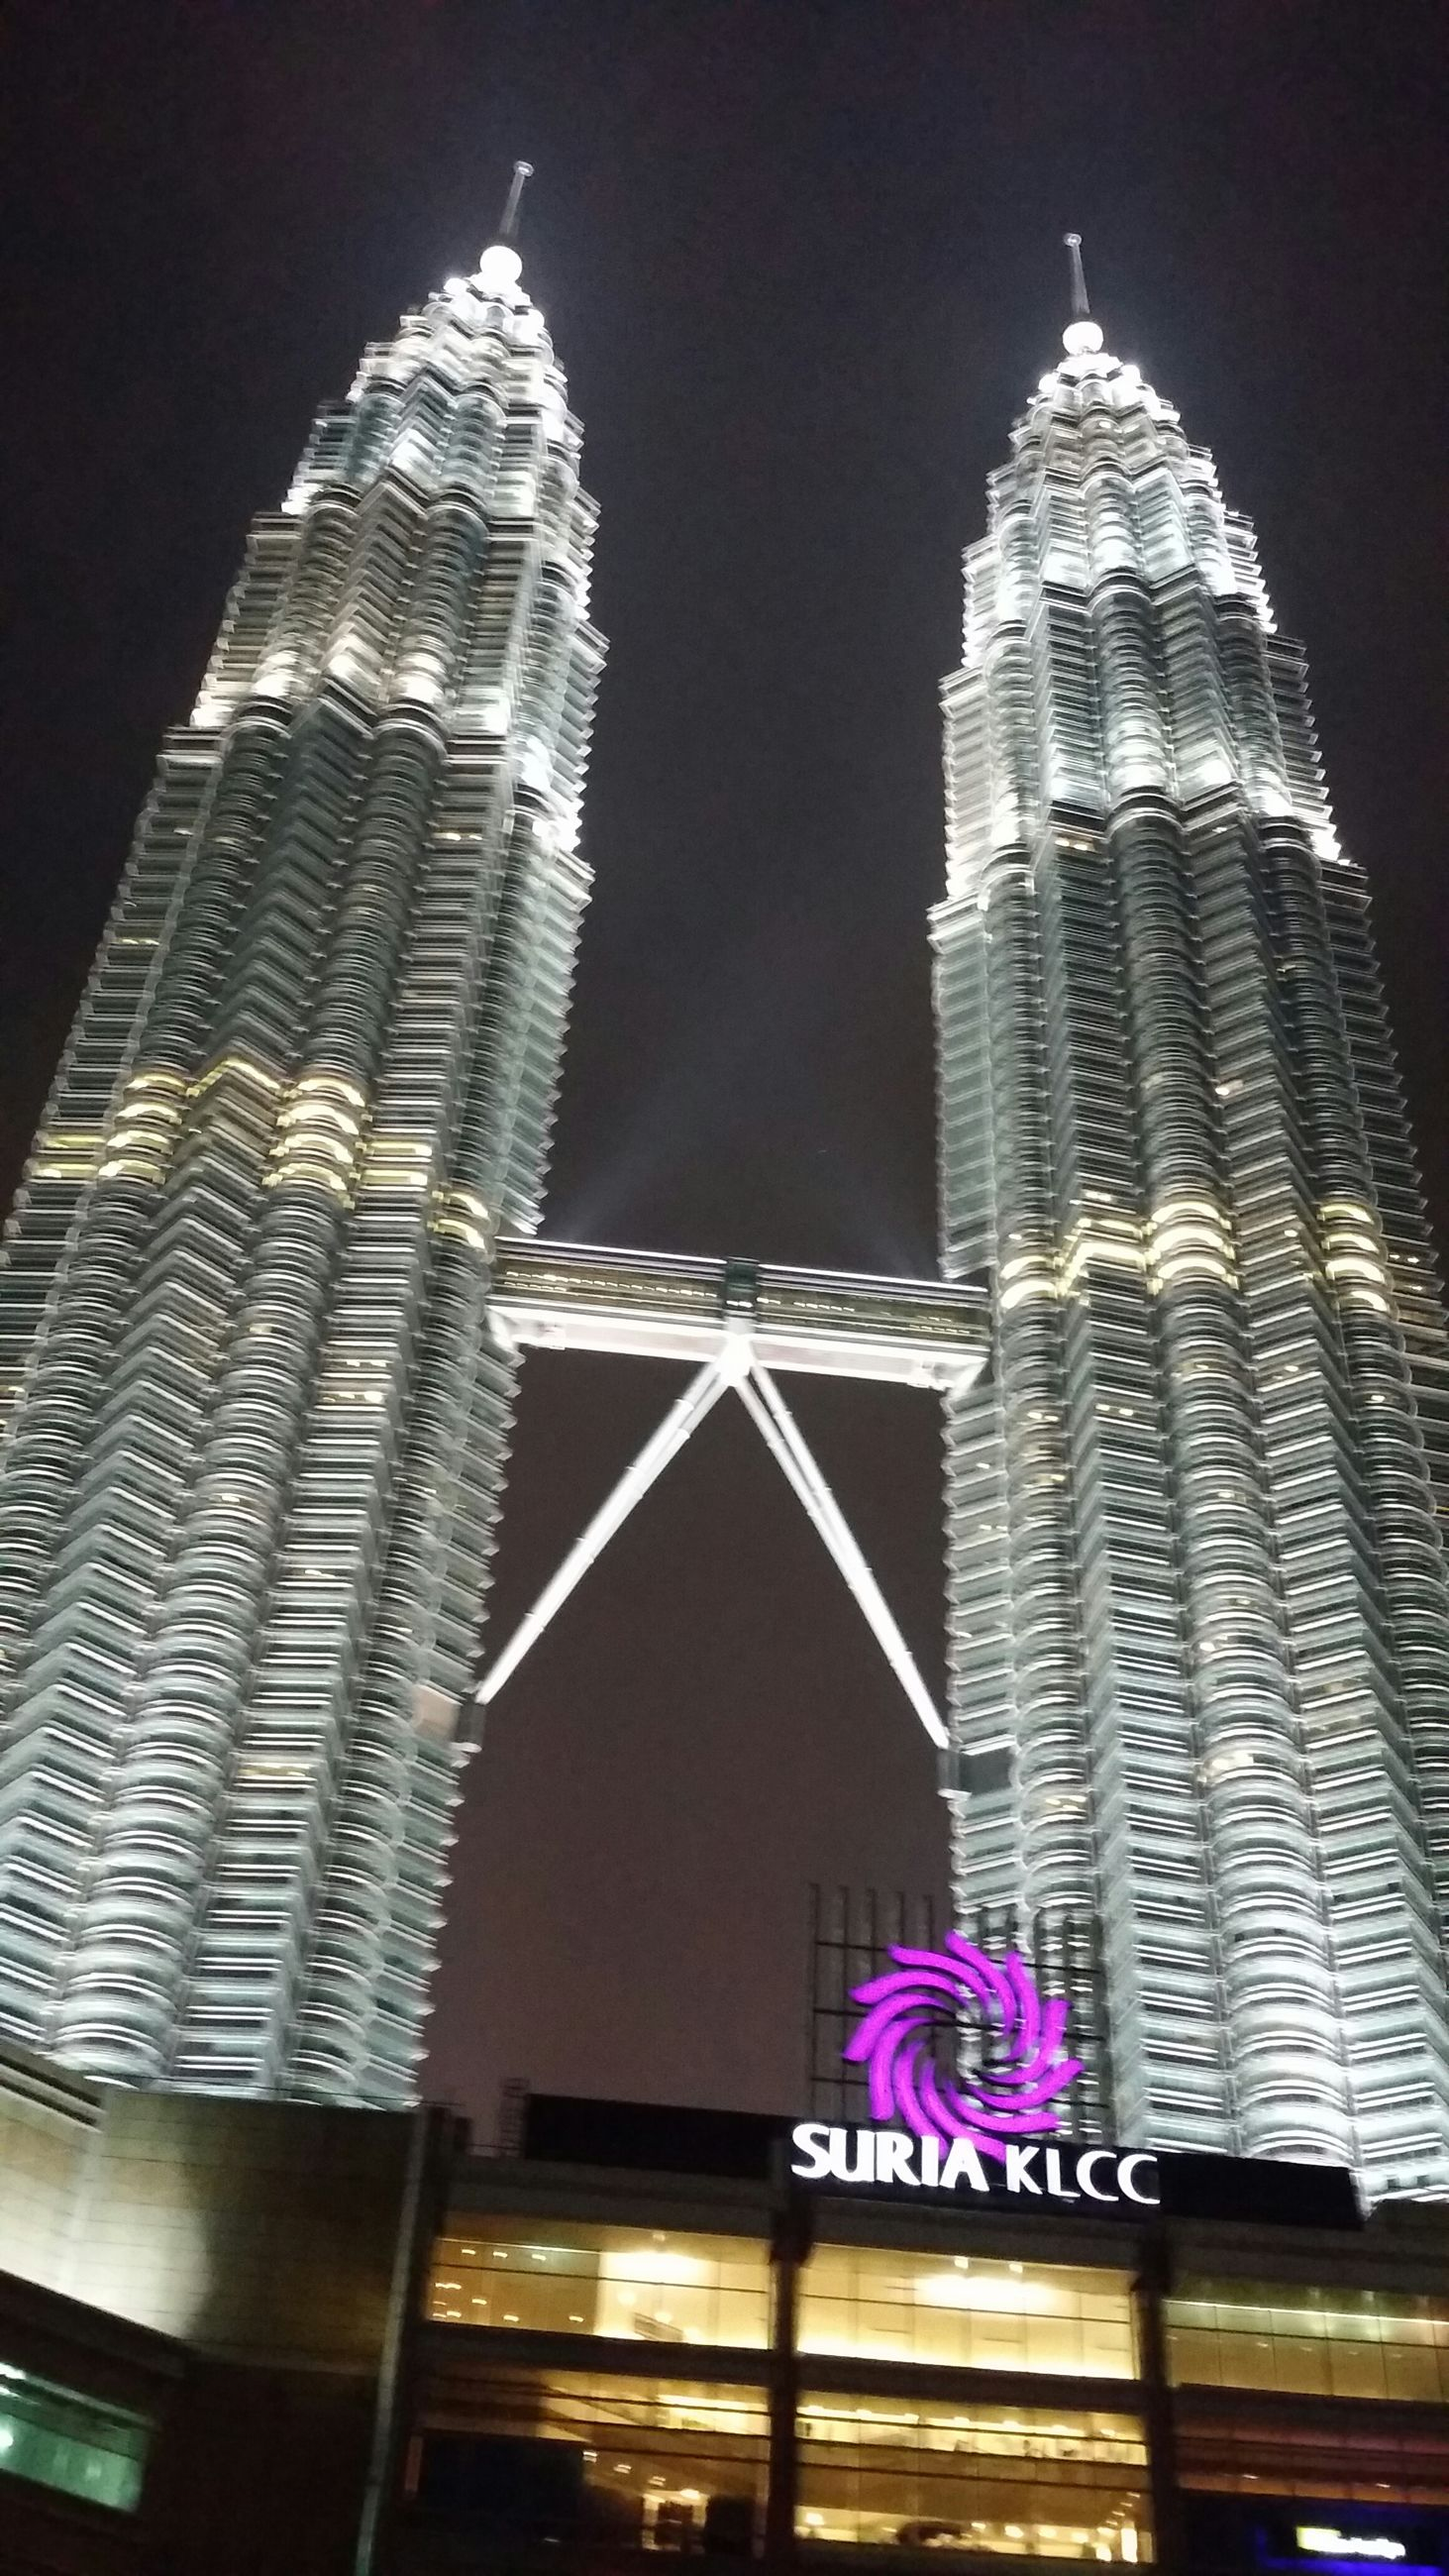 architecture, building exterior, built structure, low angle view, tower, city, tall - high, night, famous place, skyscraper, travel destinations, capital cities, clear sky, international landmark, spire, illuminated, tourism, modern, travel, office building